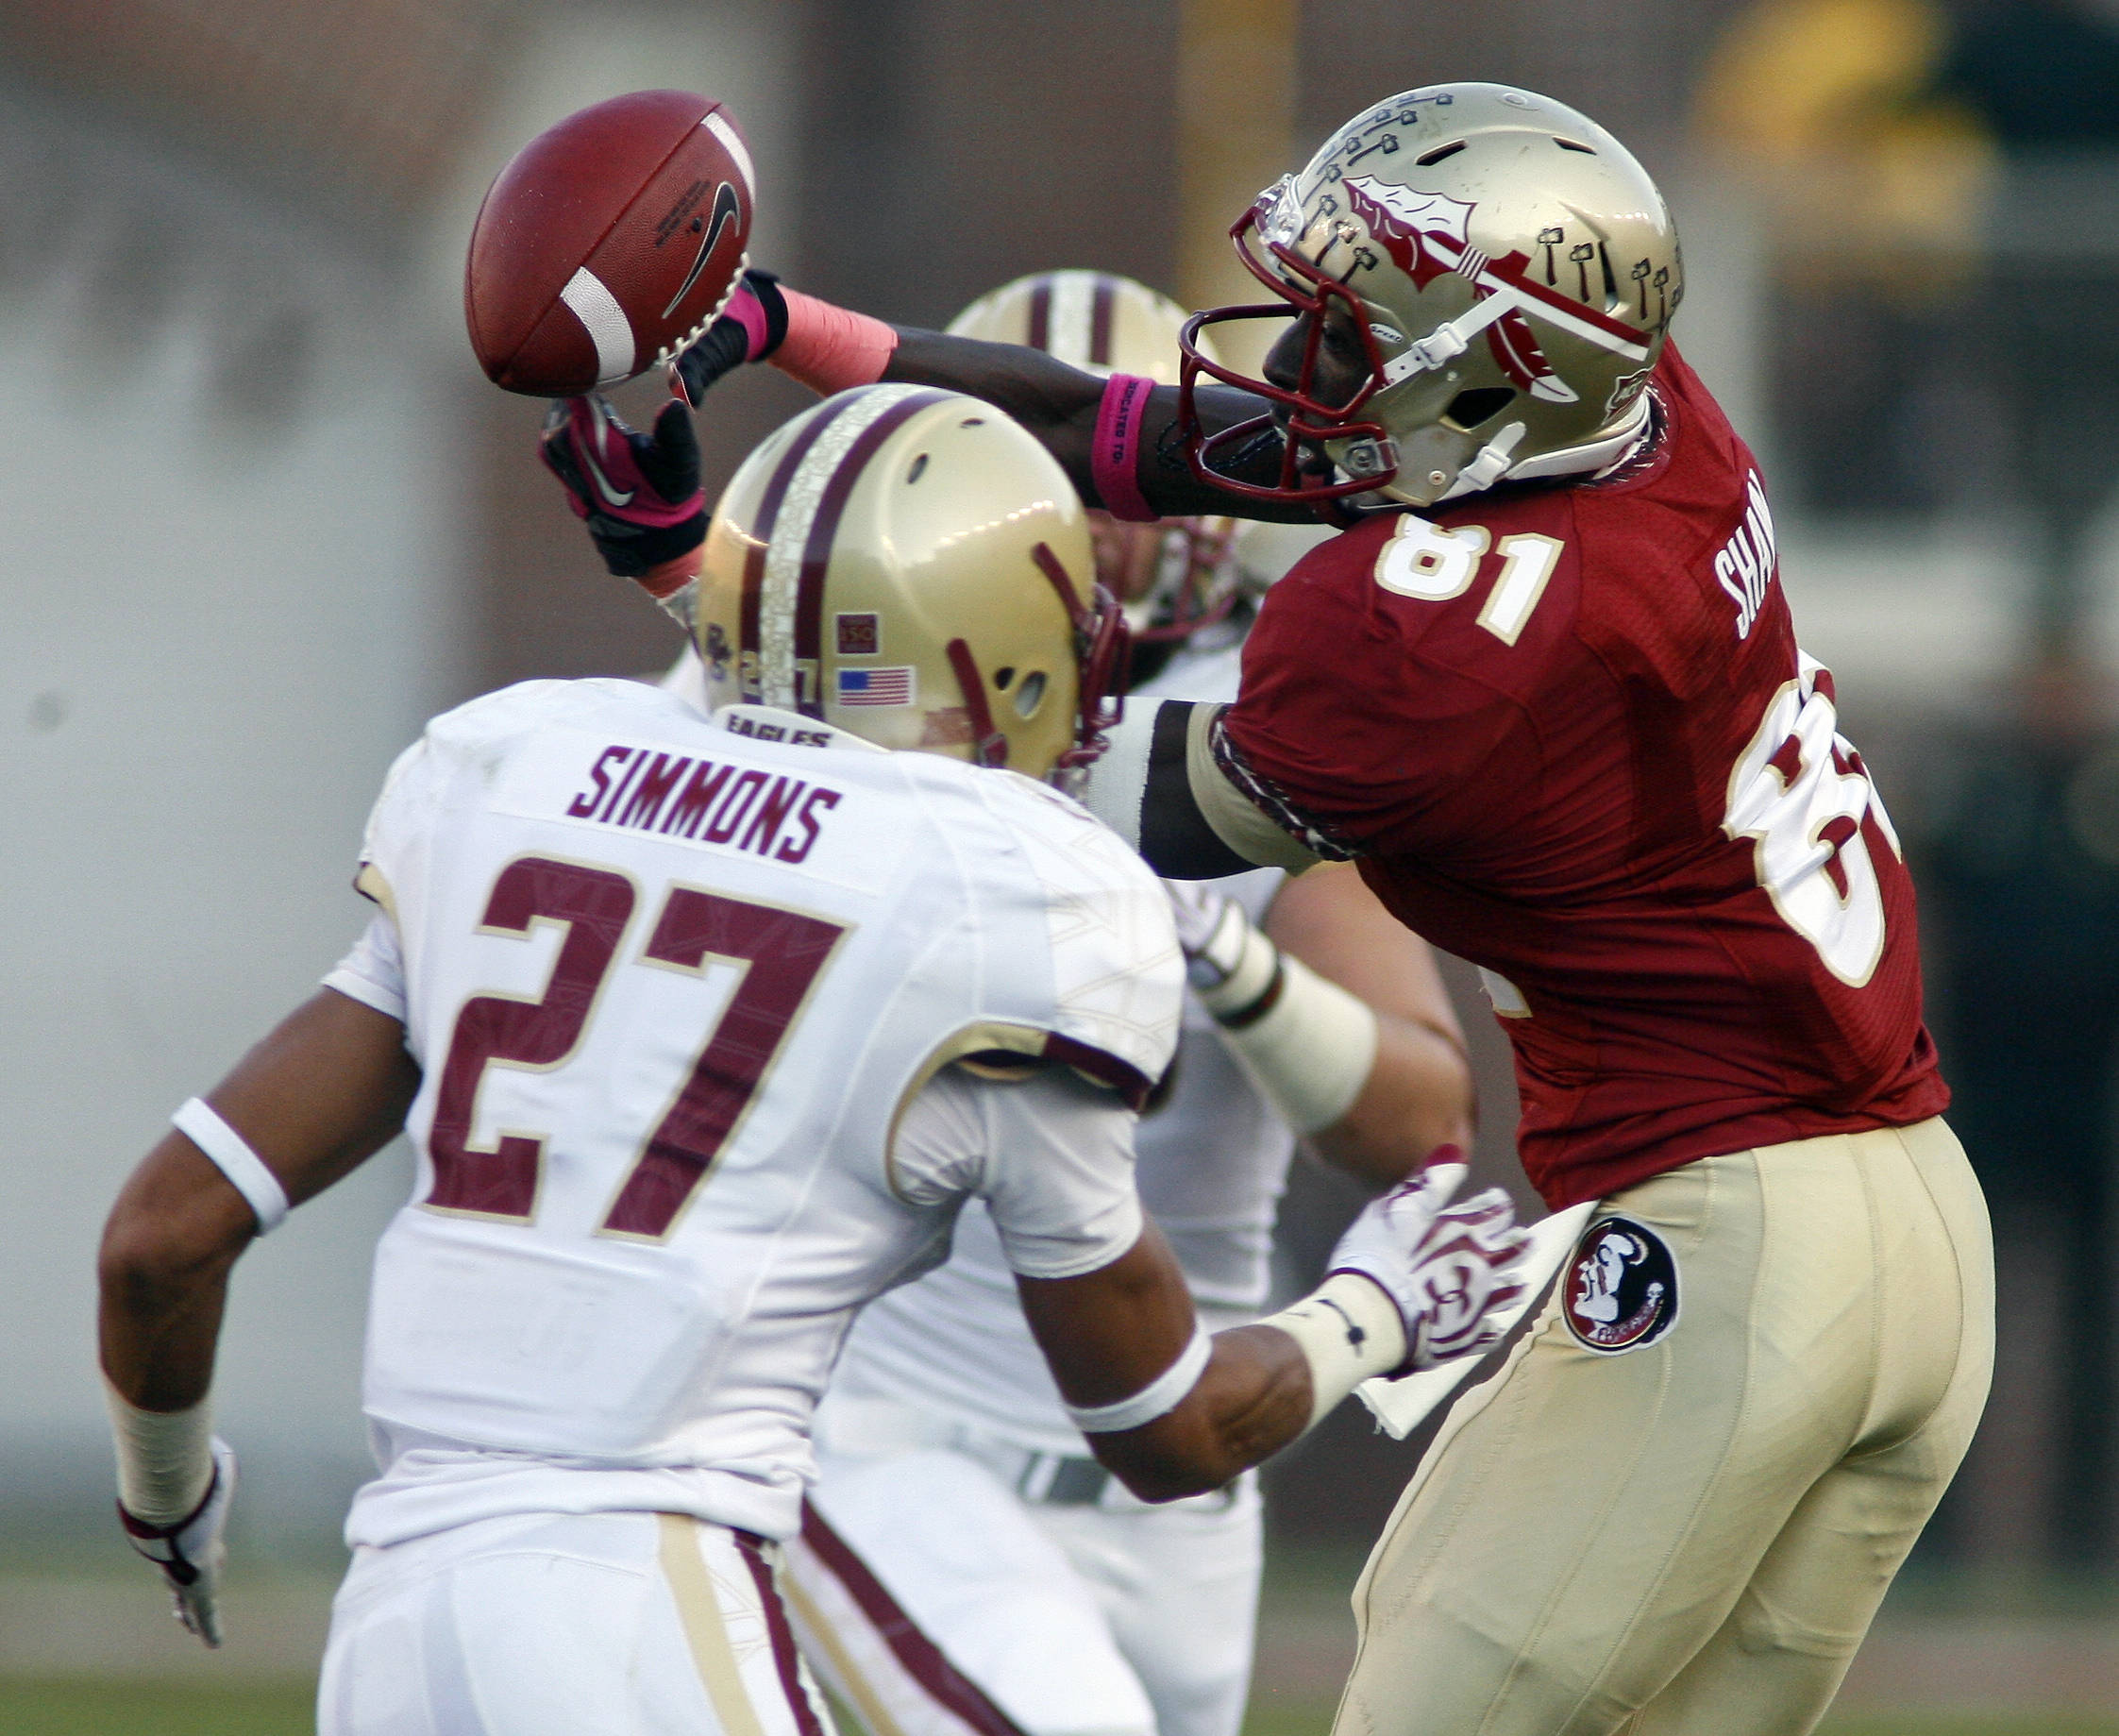 Florida State wide receiver Kenny Shaw (81) can't hold onto a pass as he is pressured by Boston College defensive back Justin Simmons (27) in the first quarter. (AP Photo/Phil Sears)